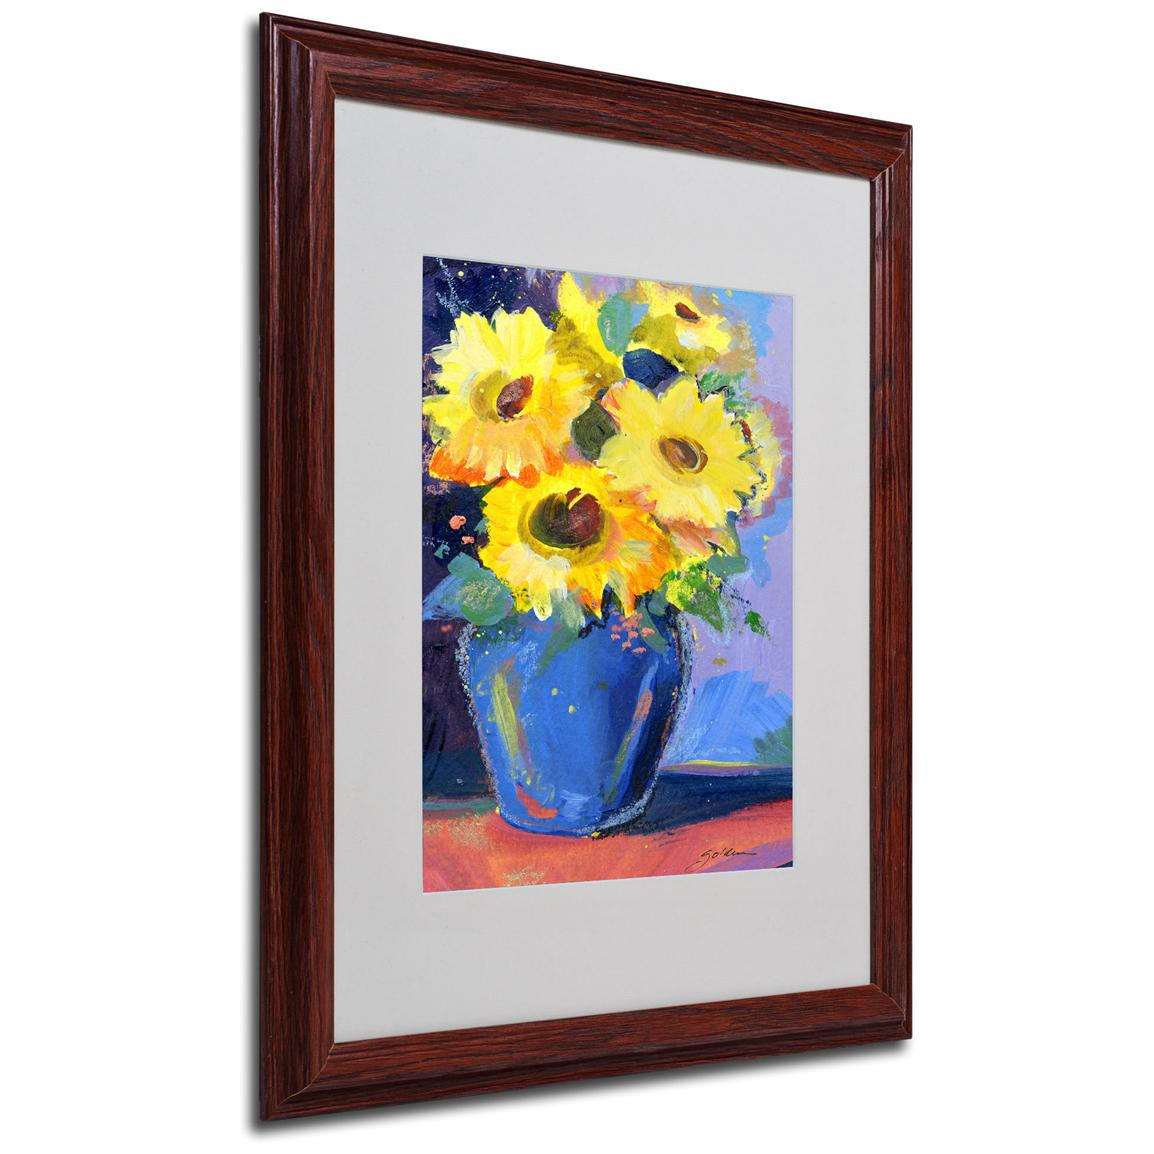 "Sheila Golden ""Sunflowers II"" Framed Matted Art, Walnut"